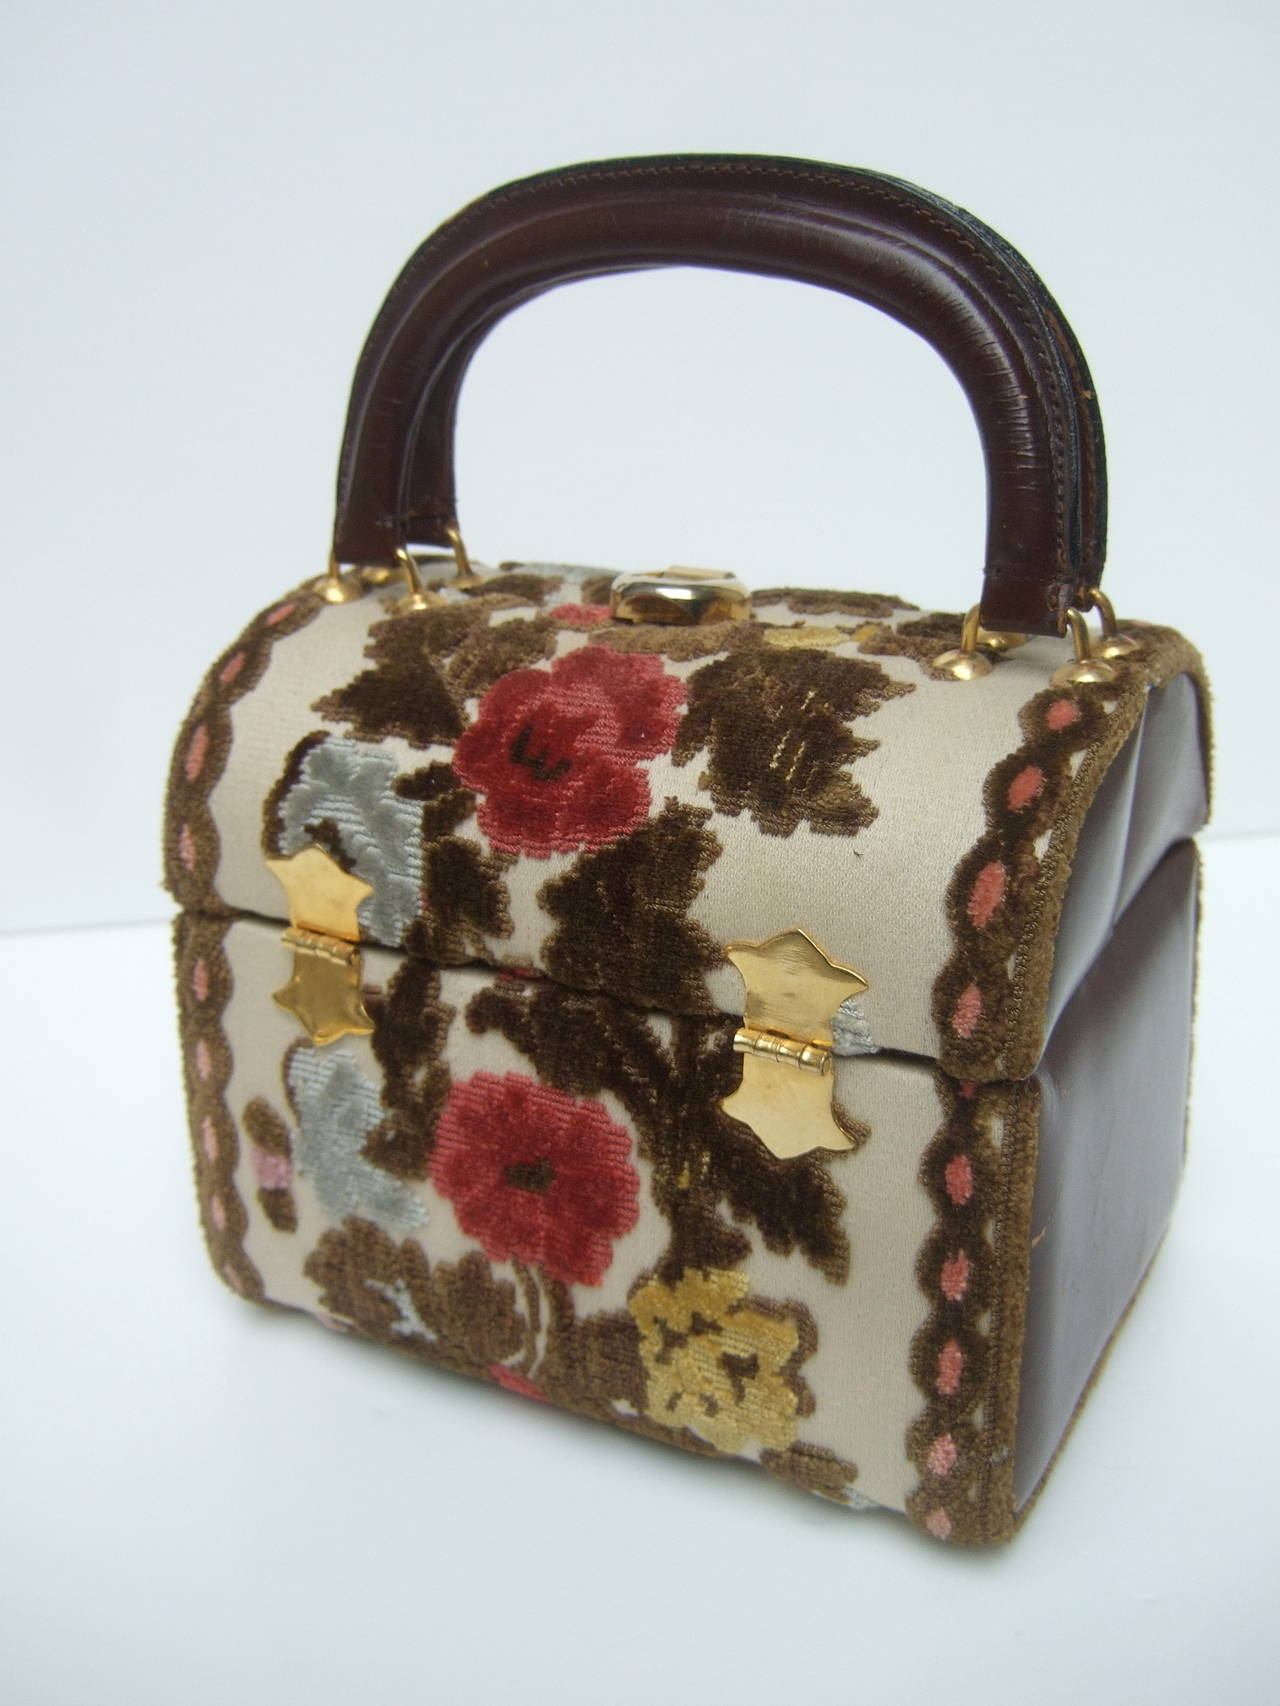 Brocade Box Style Handbag Designed By Tano Of Madrid C